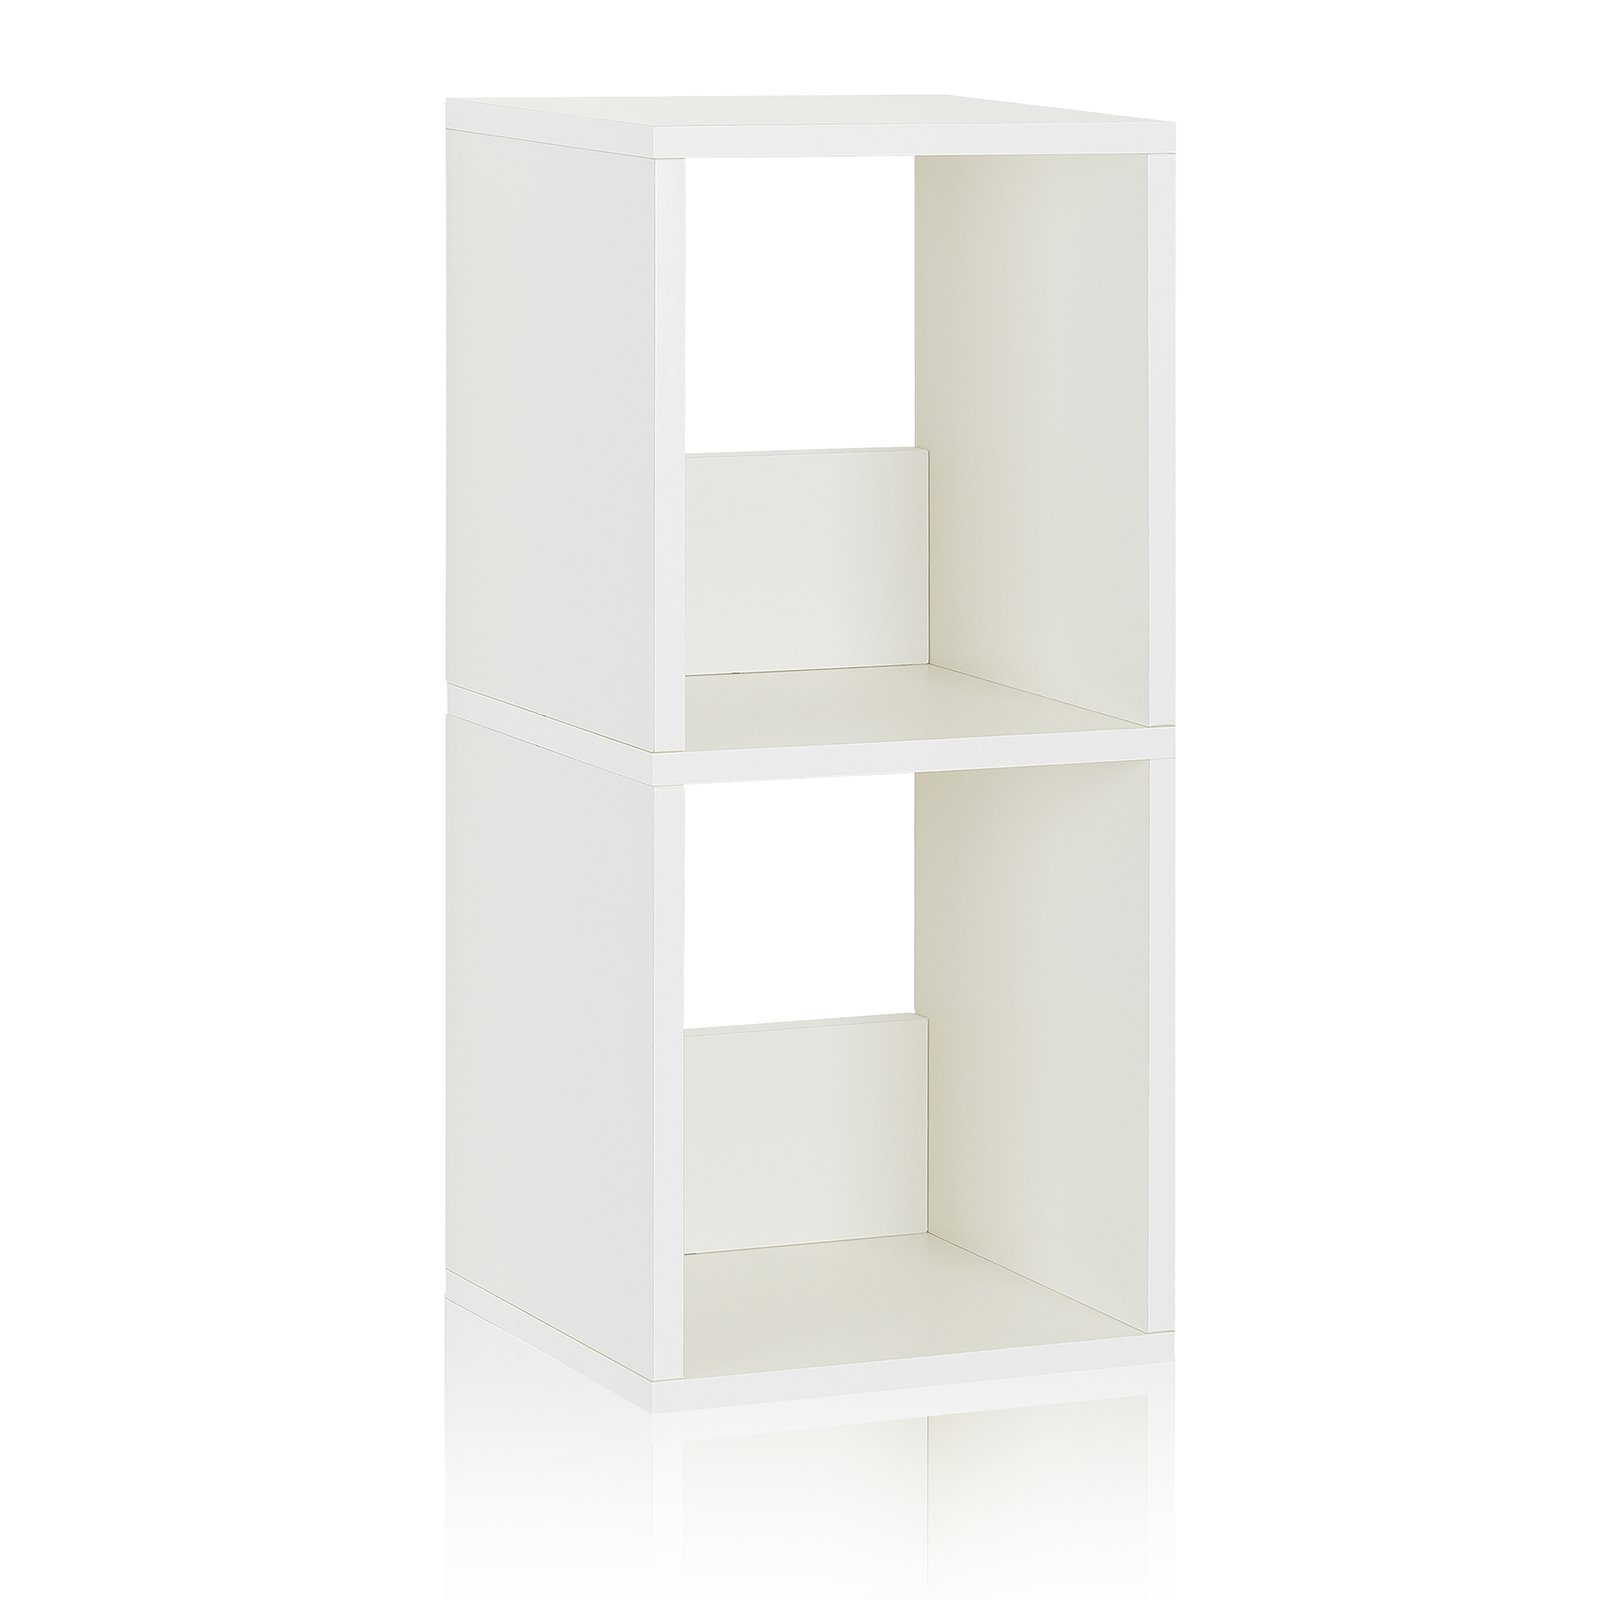 most intended for home designs bookcase shelf white design the two ideas bookcases